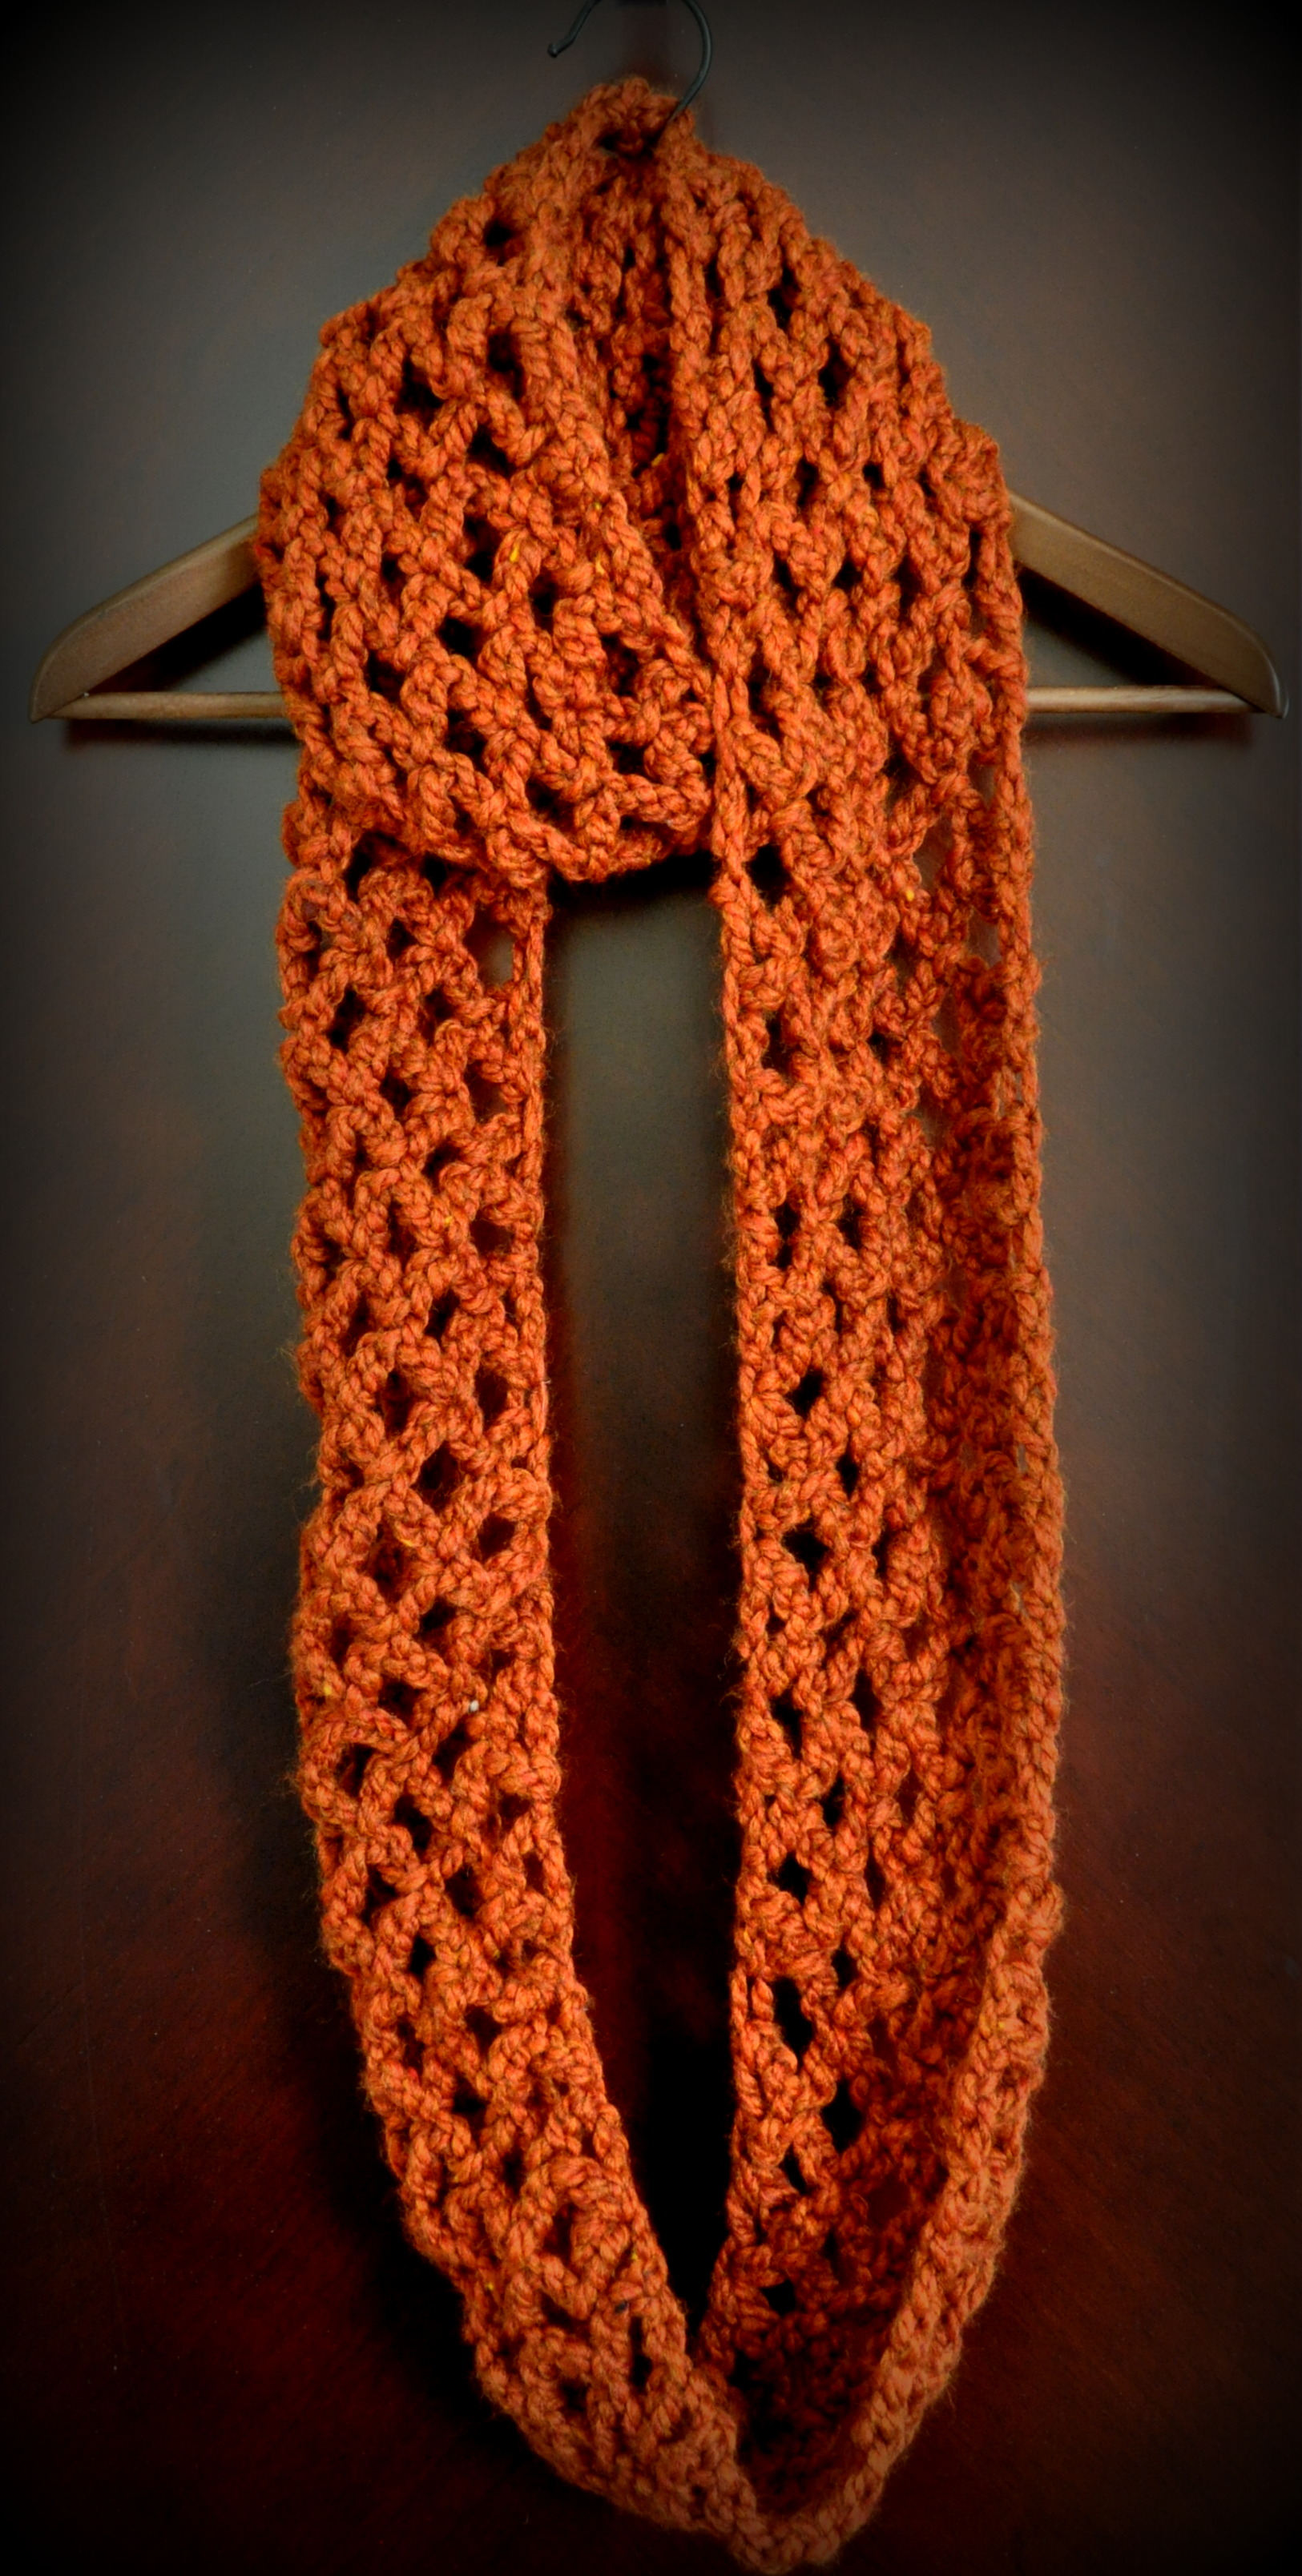 Free Scarf Crochet Patterns From Our Free Crochet Patterns Apps ...